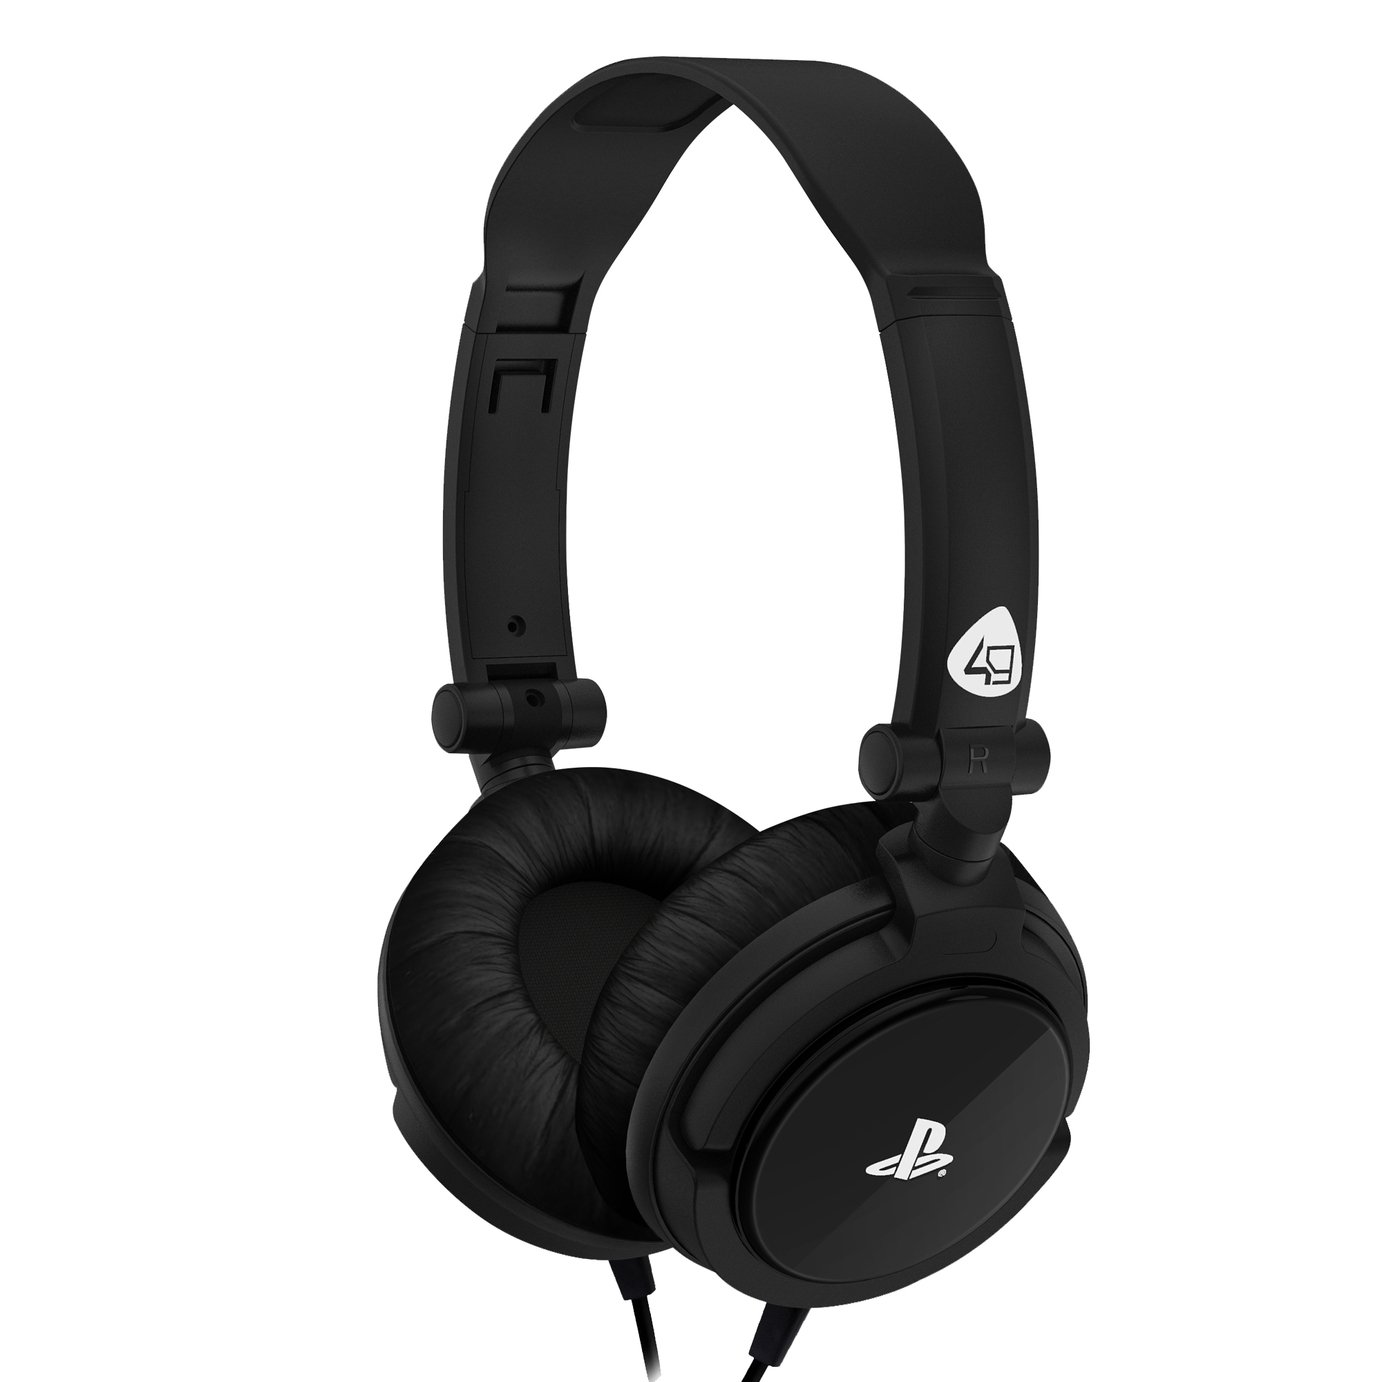 Image of 4Gamers PRO4-10 Stereo Gaming Headset PS4/PS Vita - Black